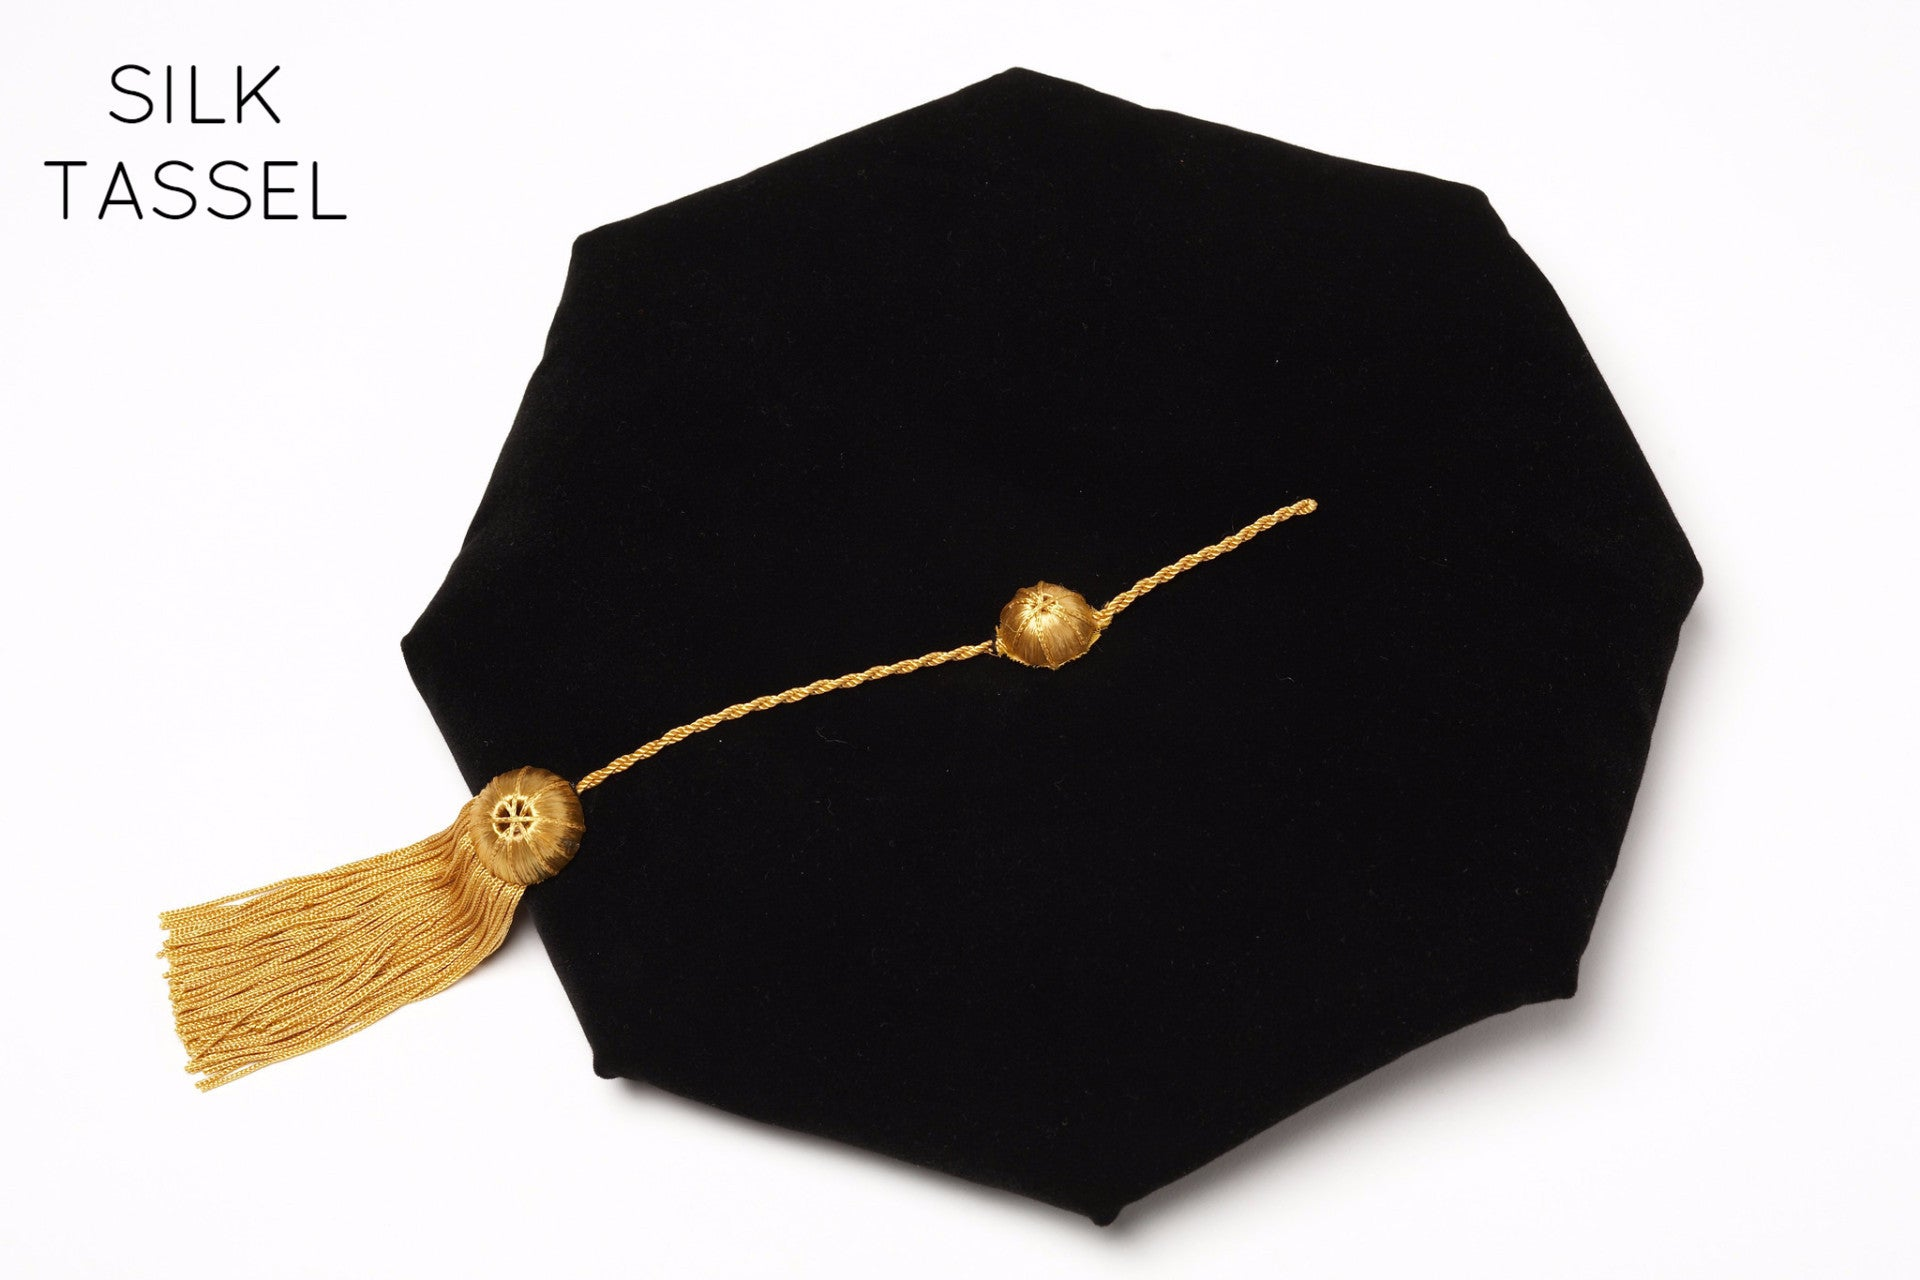 Yale University 8-Sided Doctoral Tam (Cap) with Silk Tassel